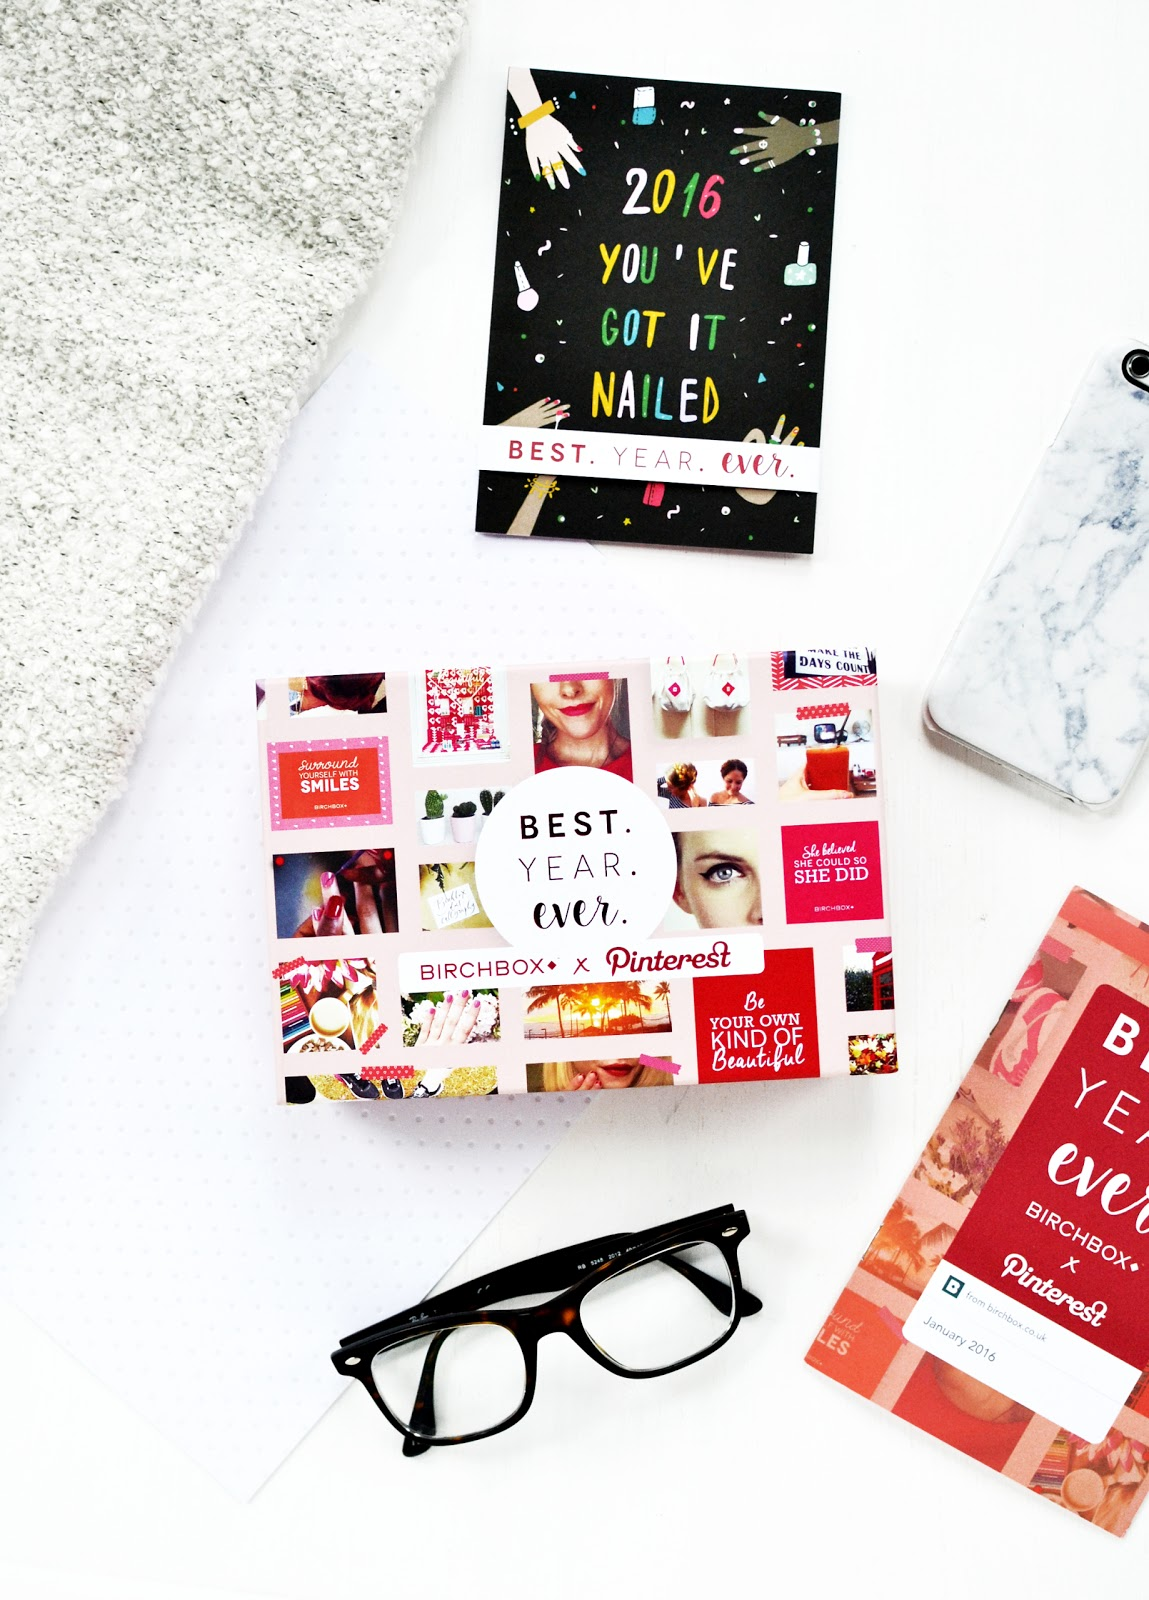 birchbox teams up with pinterest for january 2016